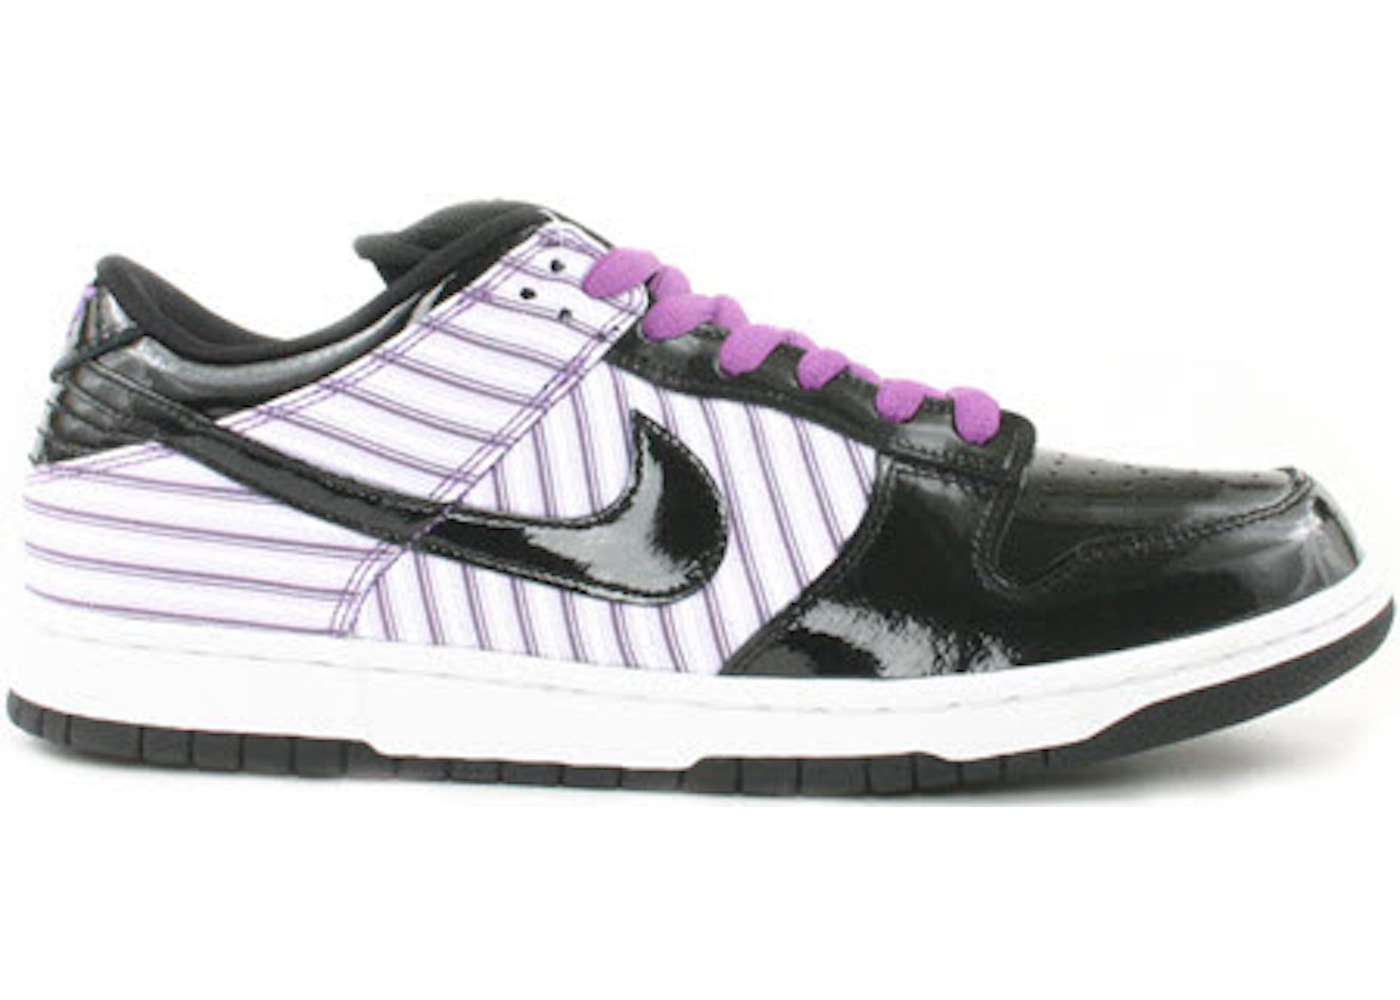 low priced bbbc5 d6693 Nike Dunk SB Low Avenger Purple Patent